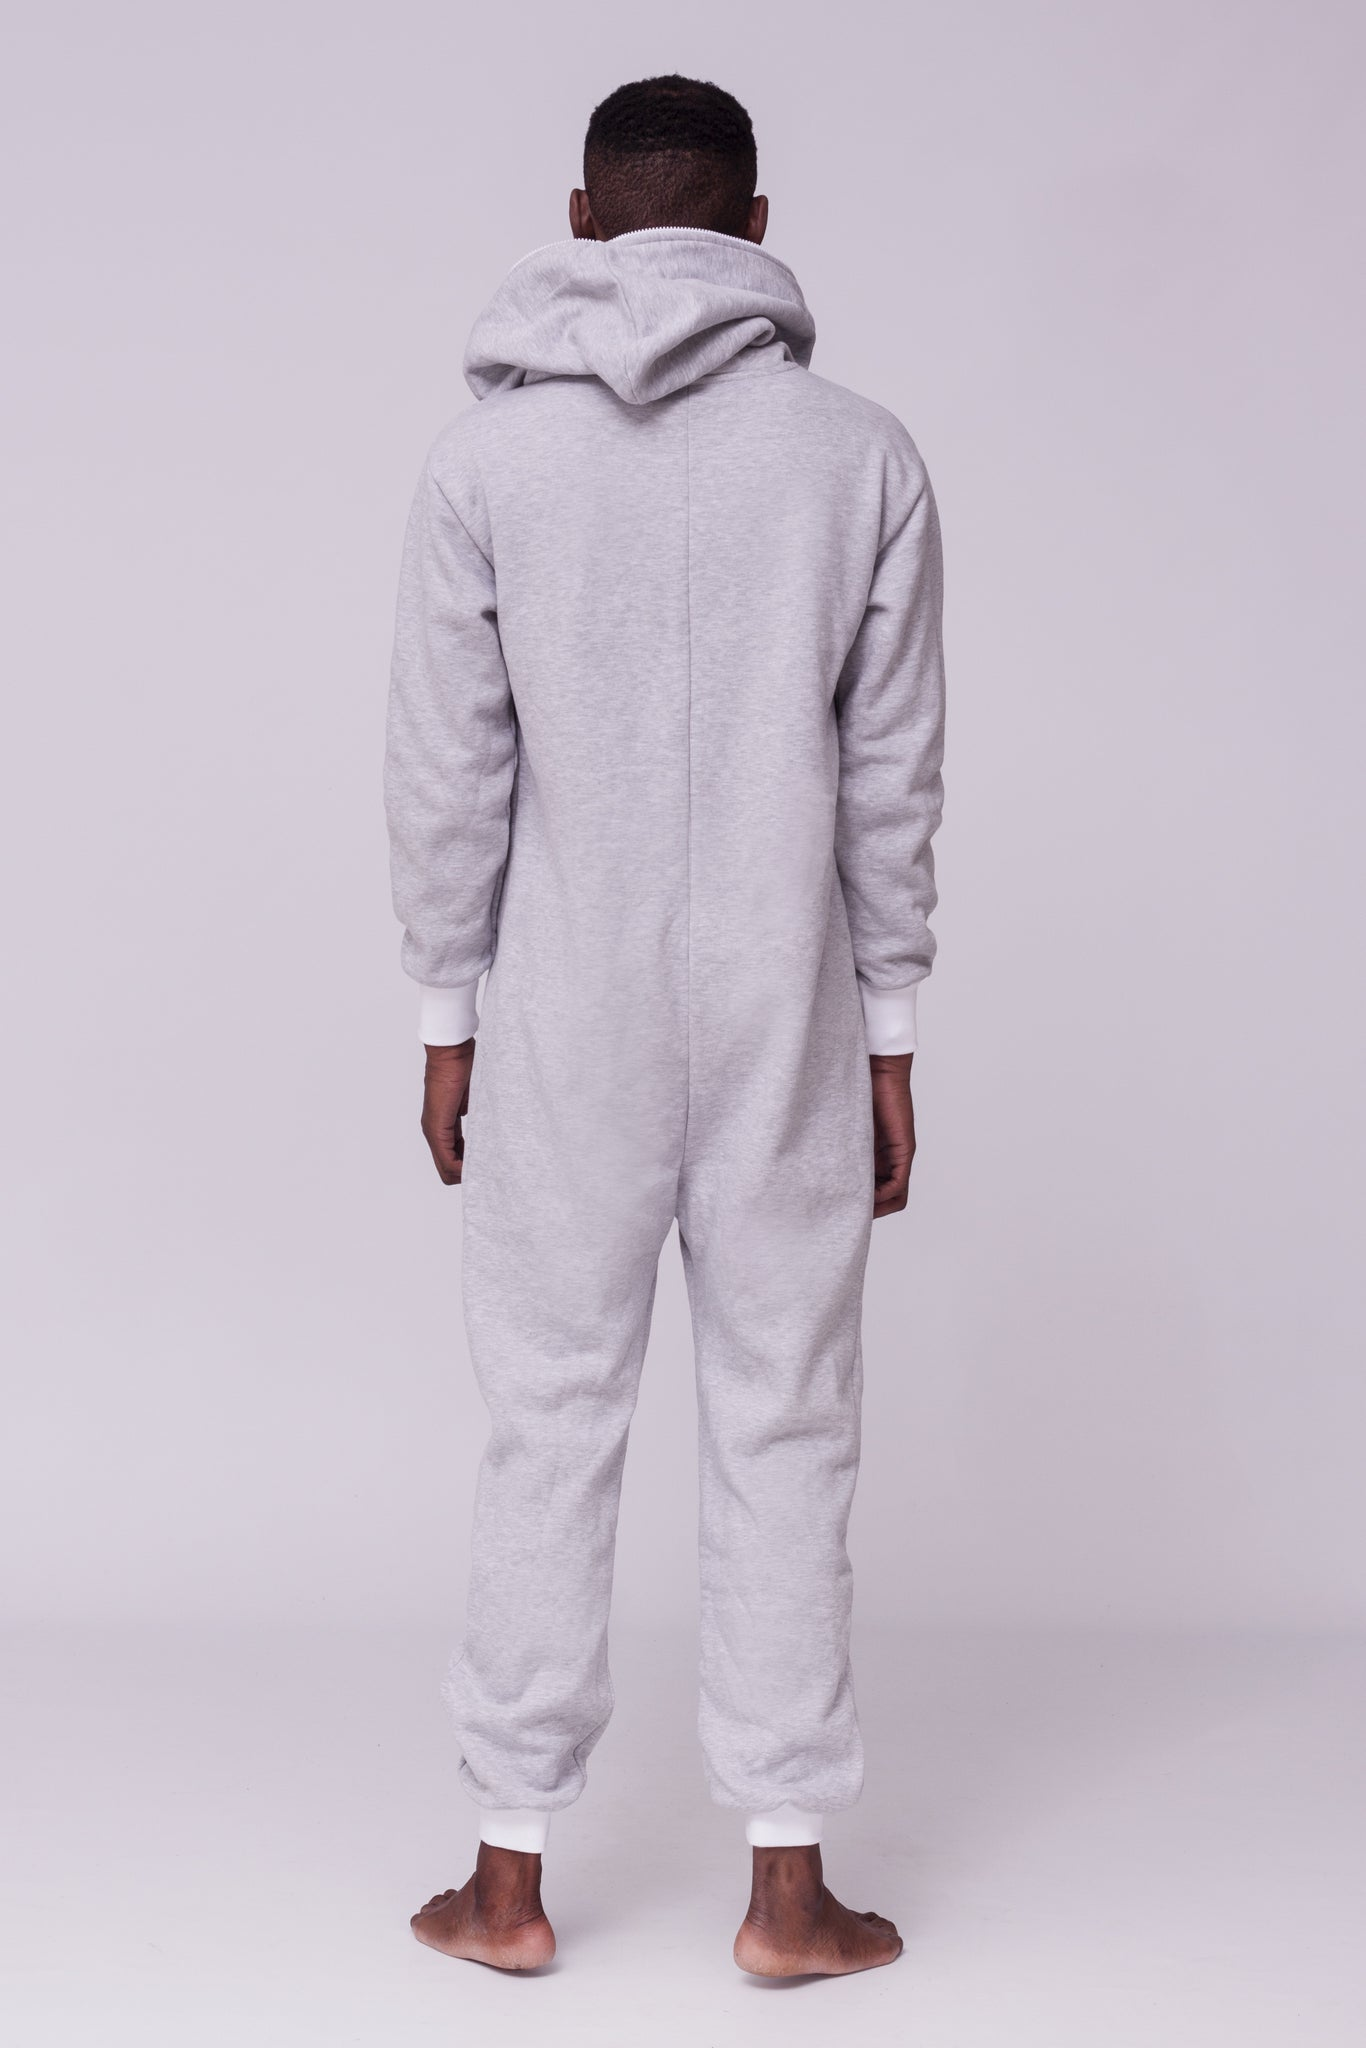 sofa killer onesie